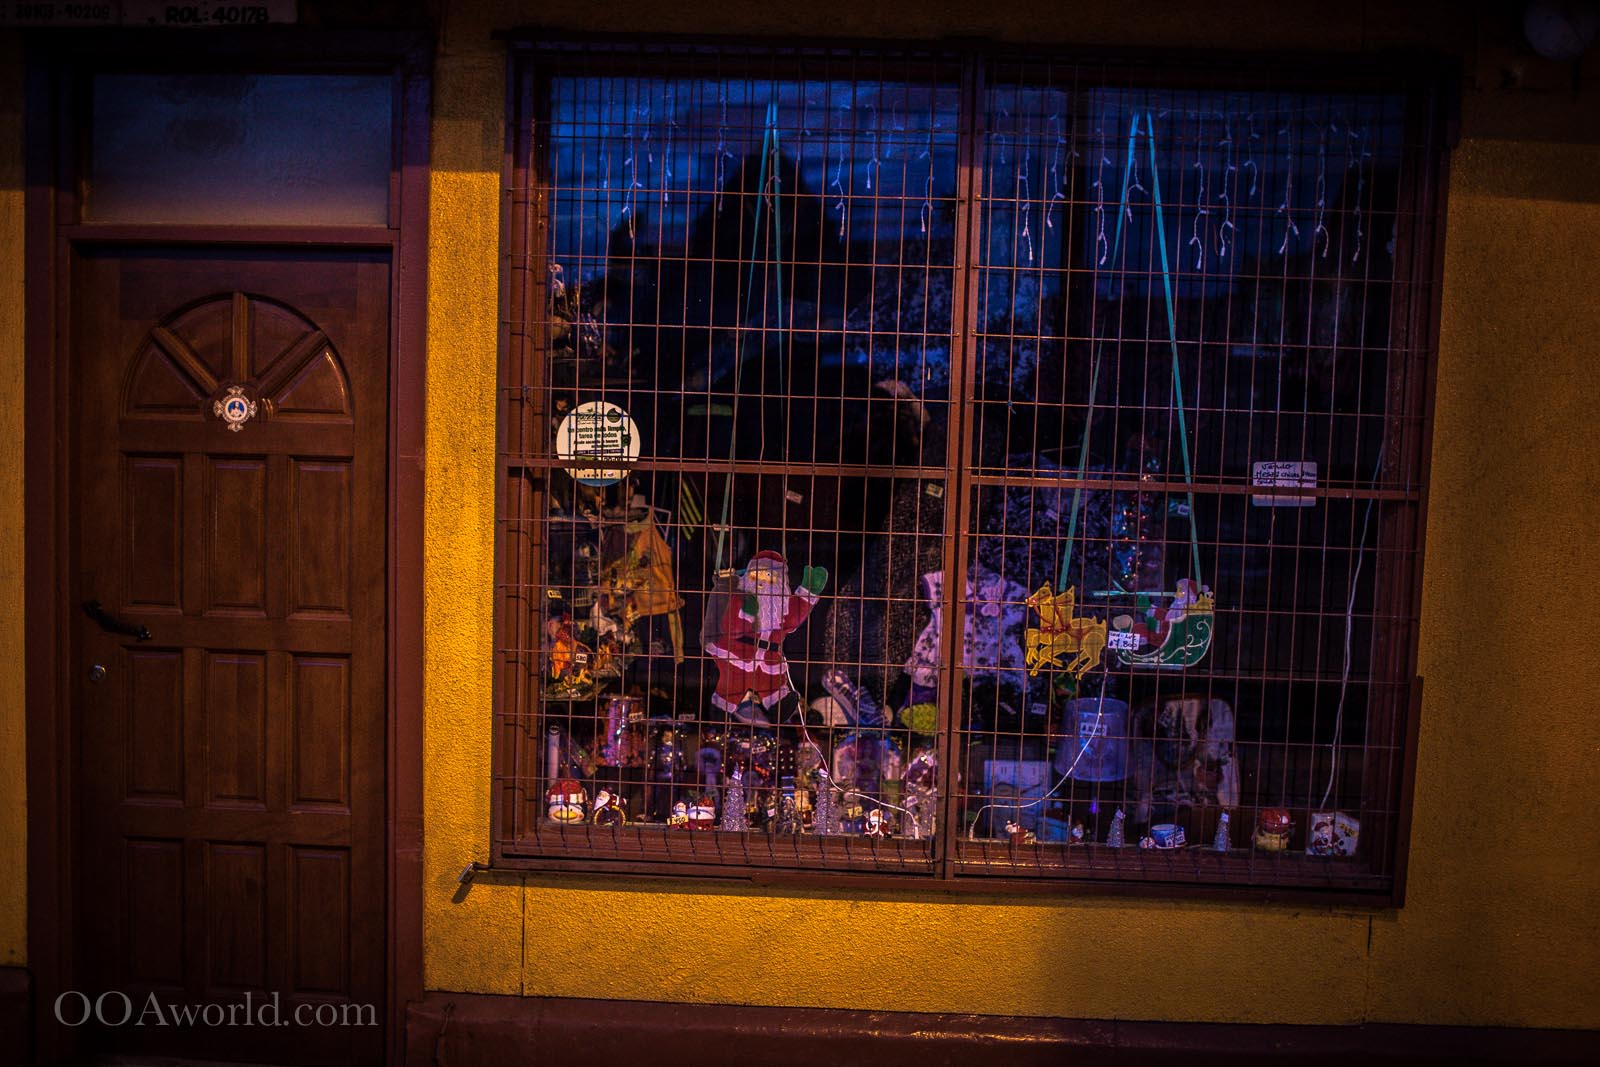 Christmas Toys Puerto Natales Photo Ooaworld